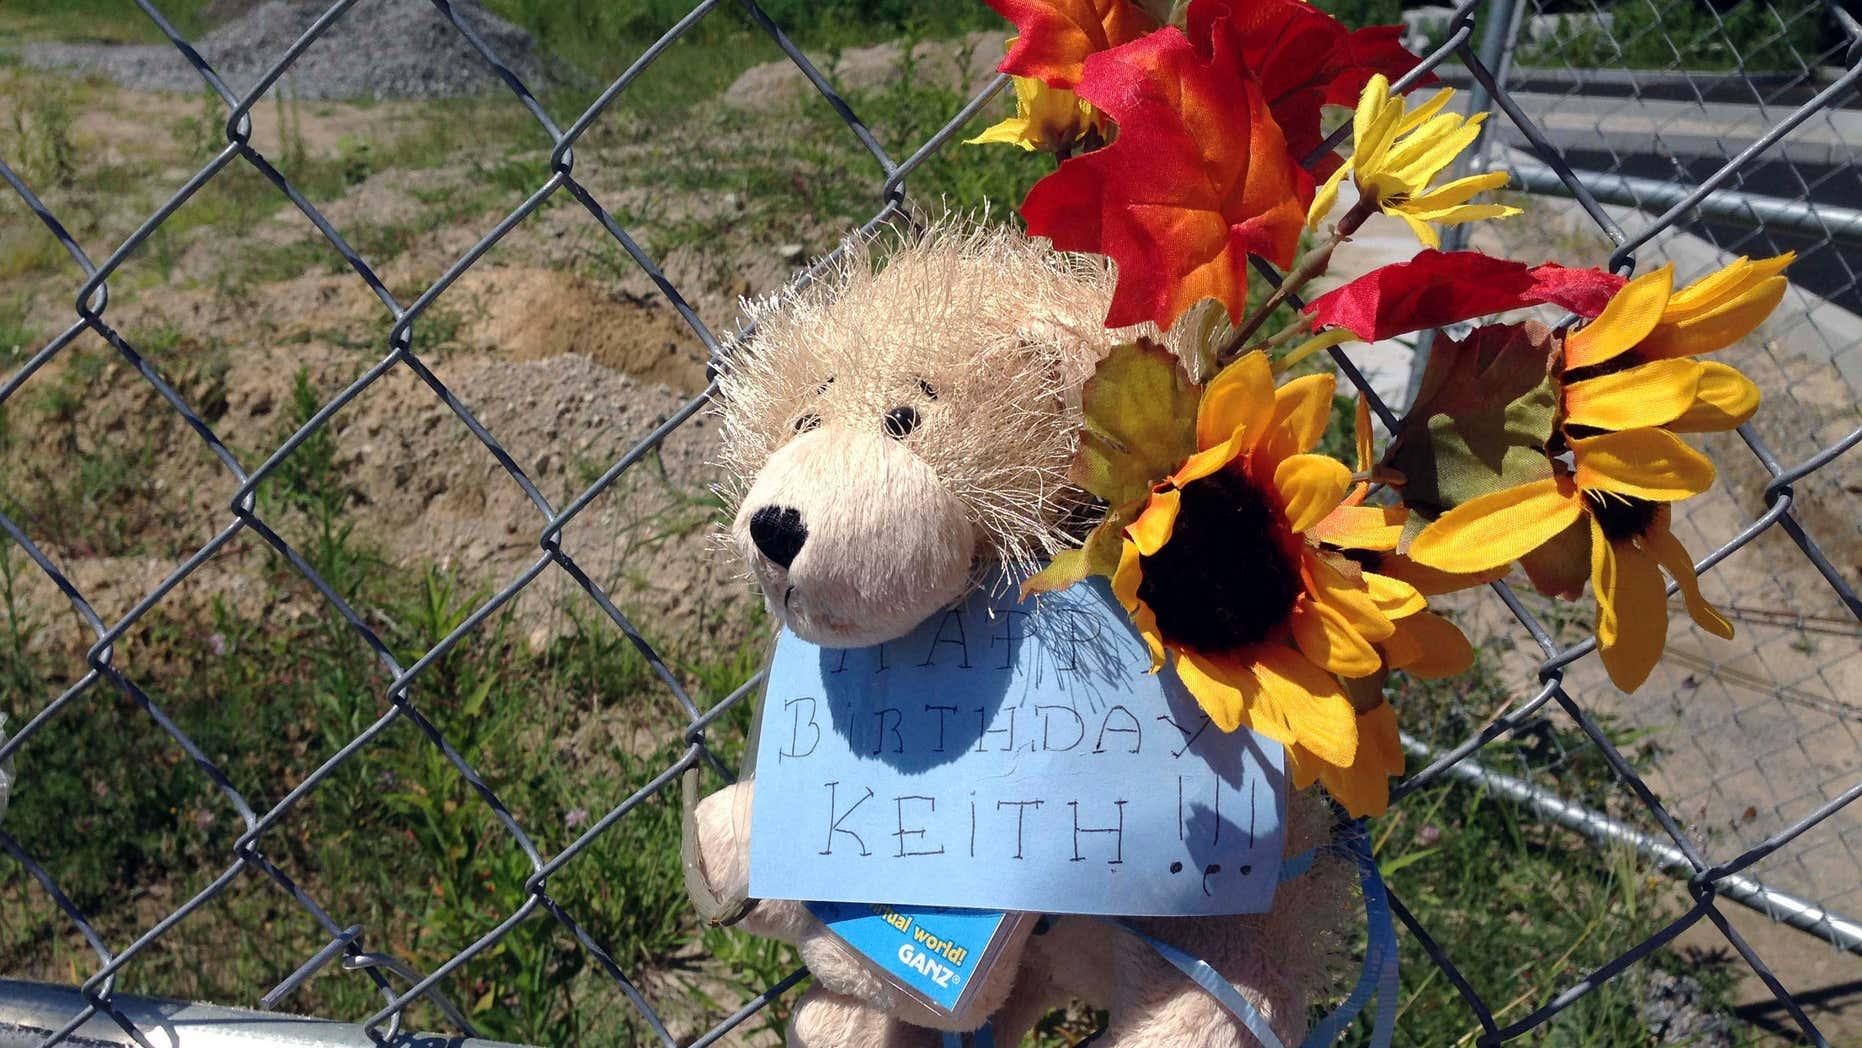 In this Thursday, Aug. 4, 2016 photo, a stuffed animal hangs from a chain link fence that surrounds the site of a 2003 nightclub fire that killed 100 people in West Warwick, R.I.